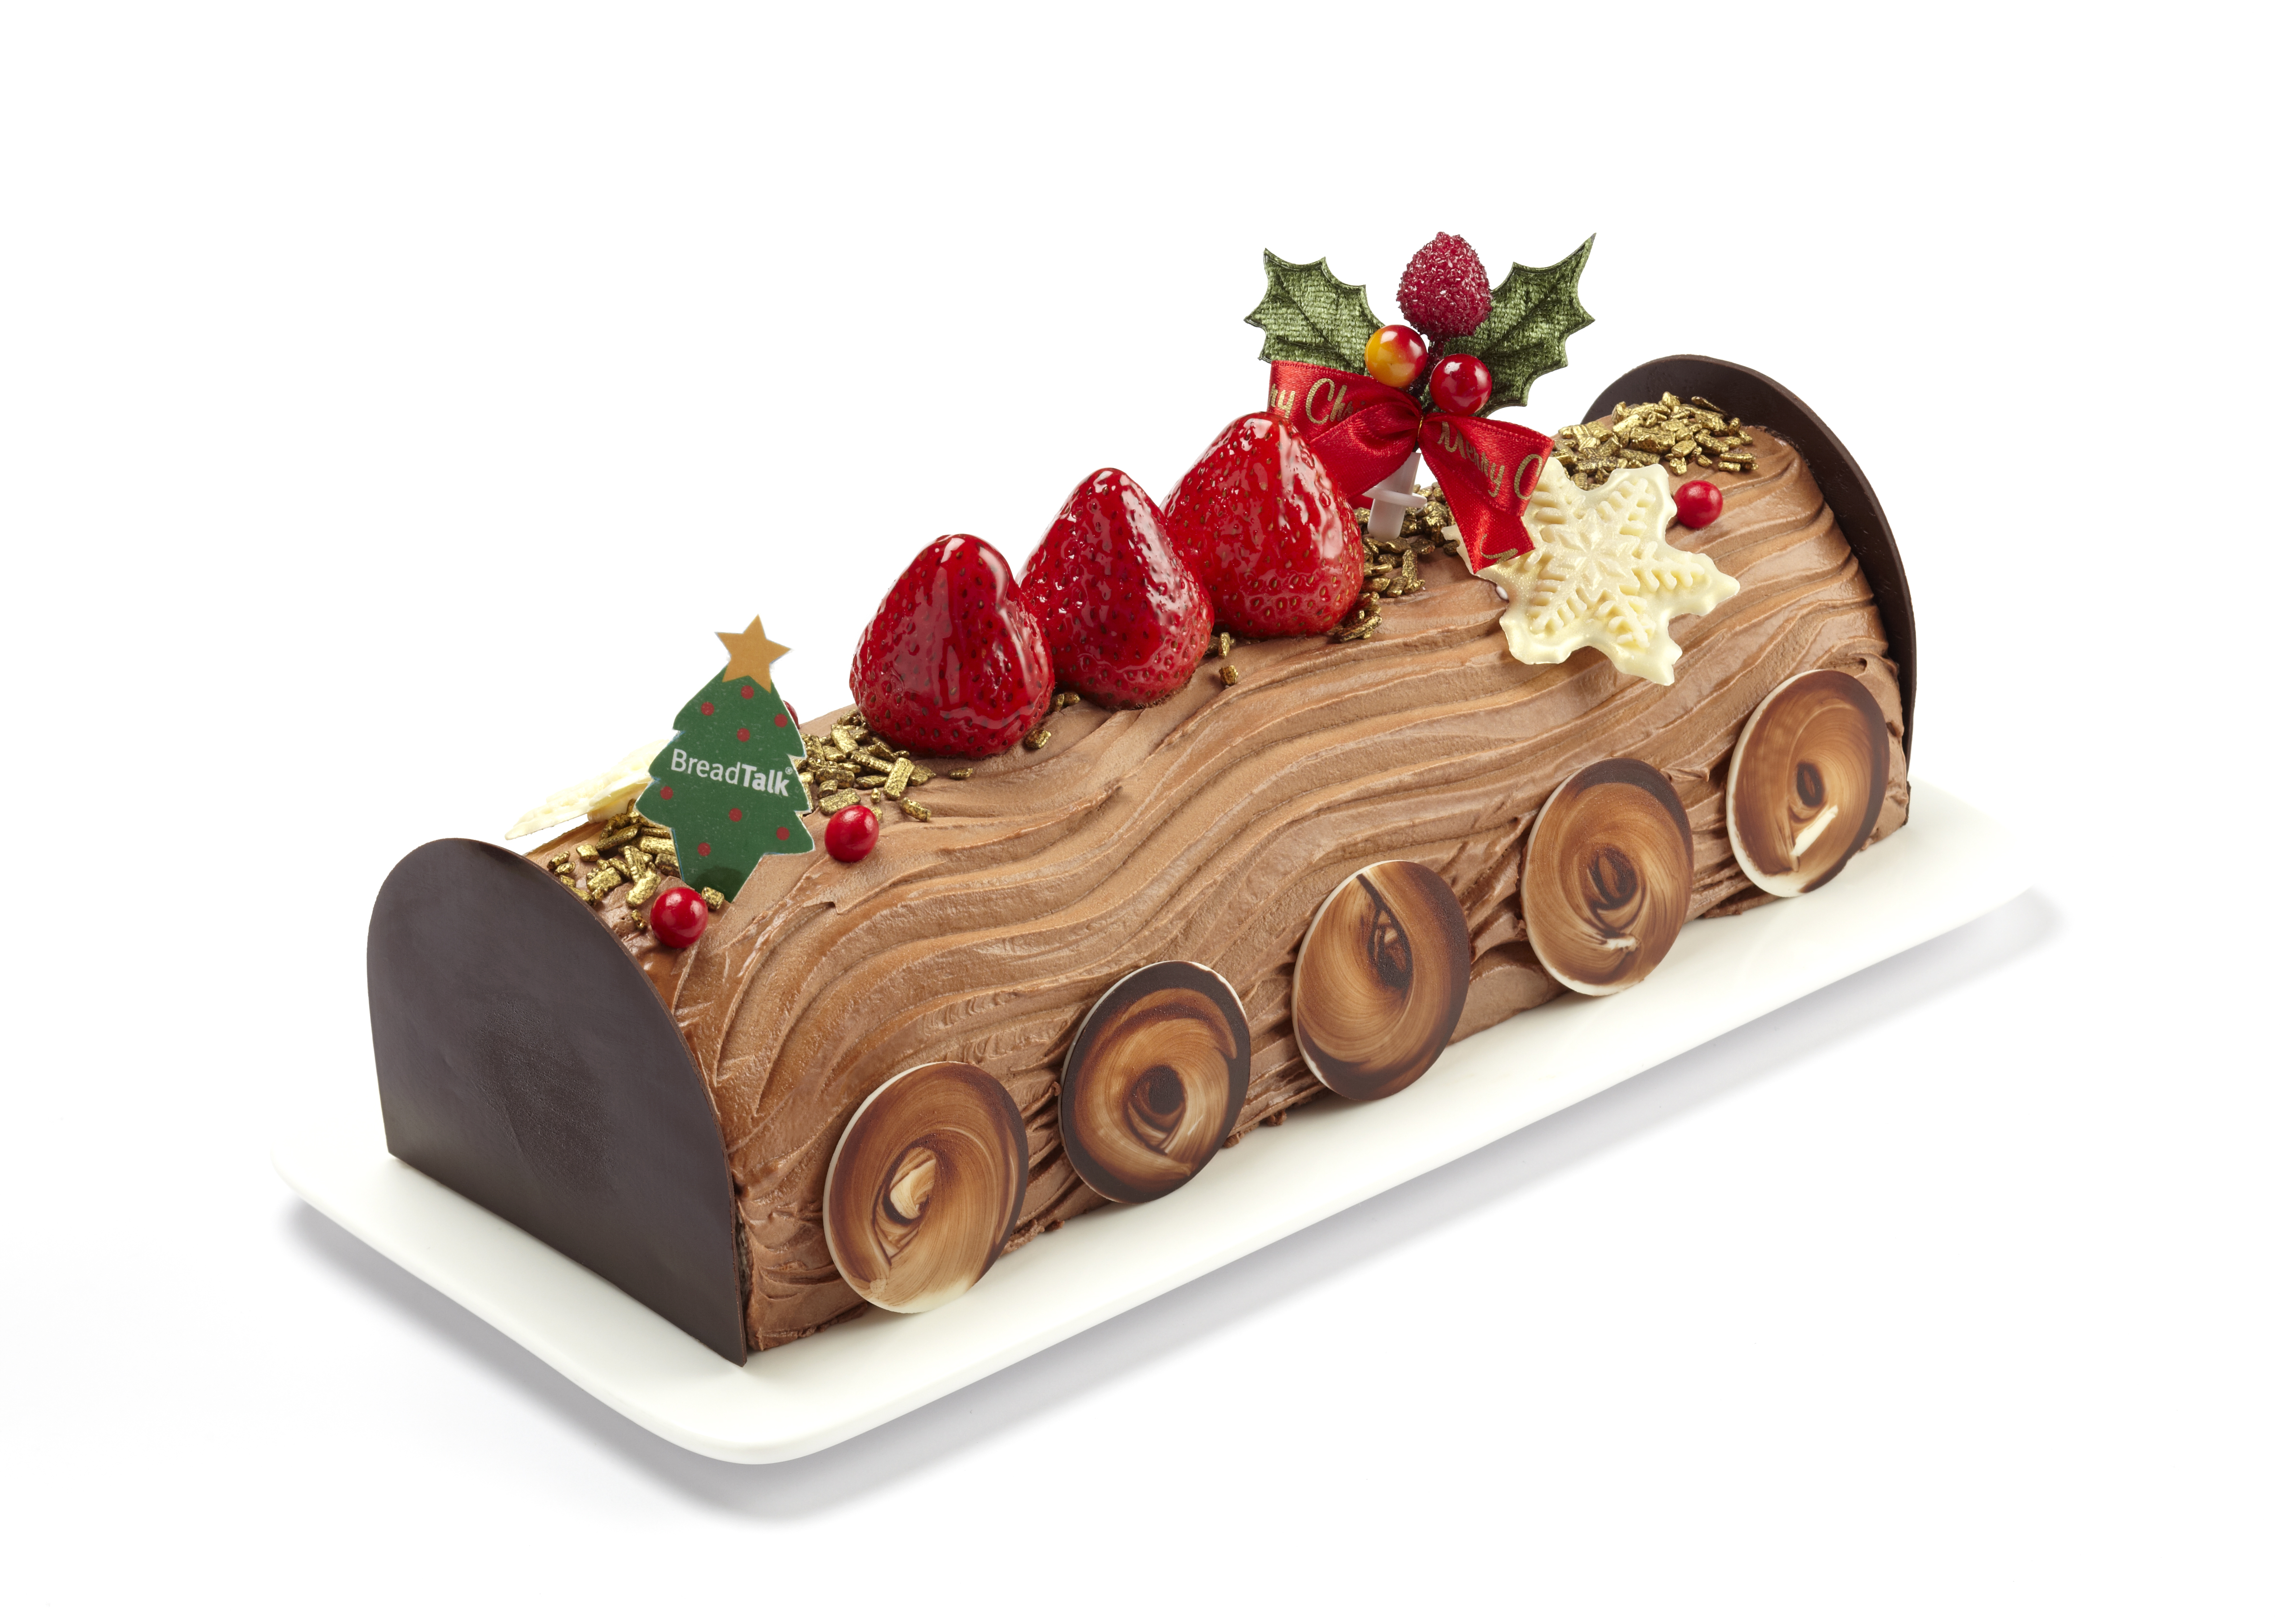 How to make a christmas yule log decoration - Breadtalk